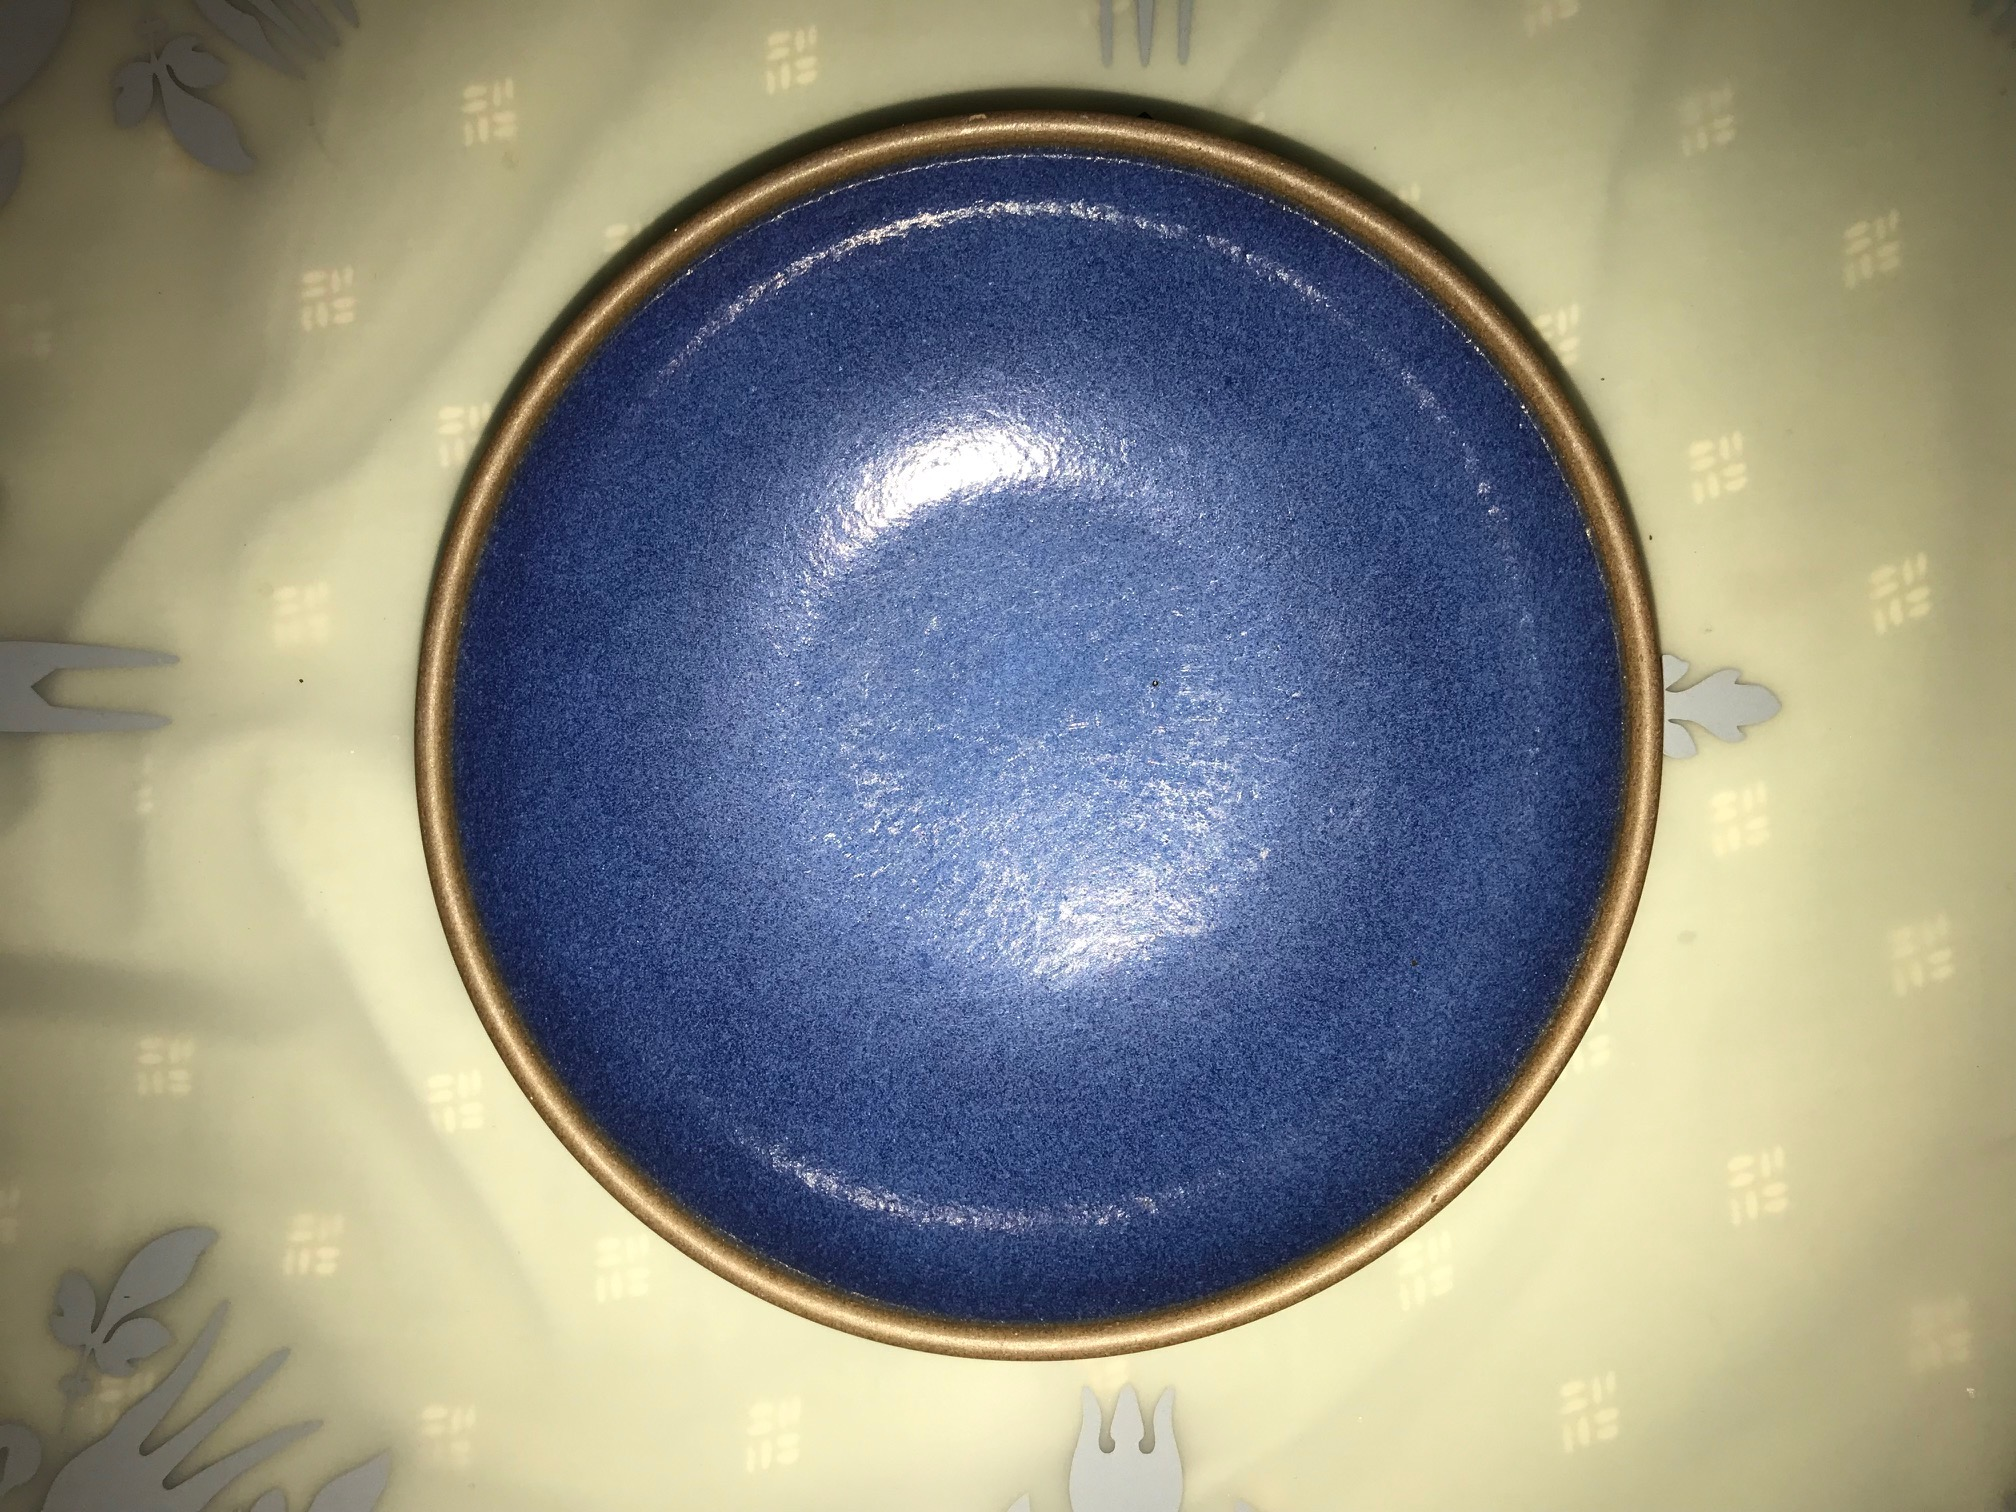 Blue Shallow Heath Potteries Bowl (Sausalito, California): 125,000 ppm Lead [For context 90 ppm Lead is considered unsafe in children's items.]